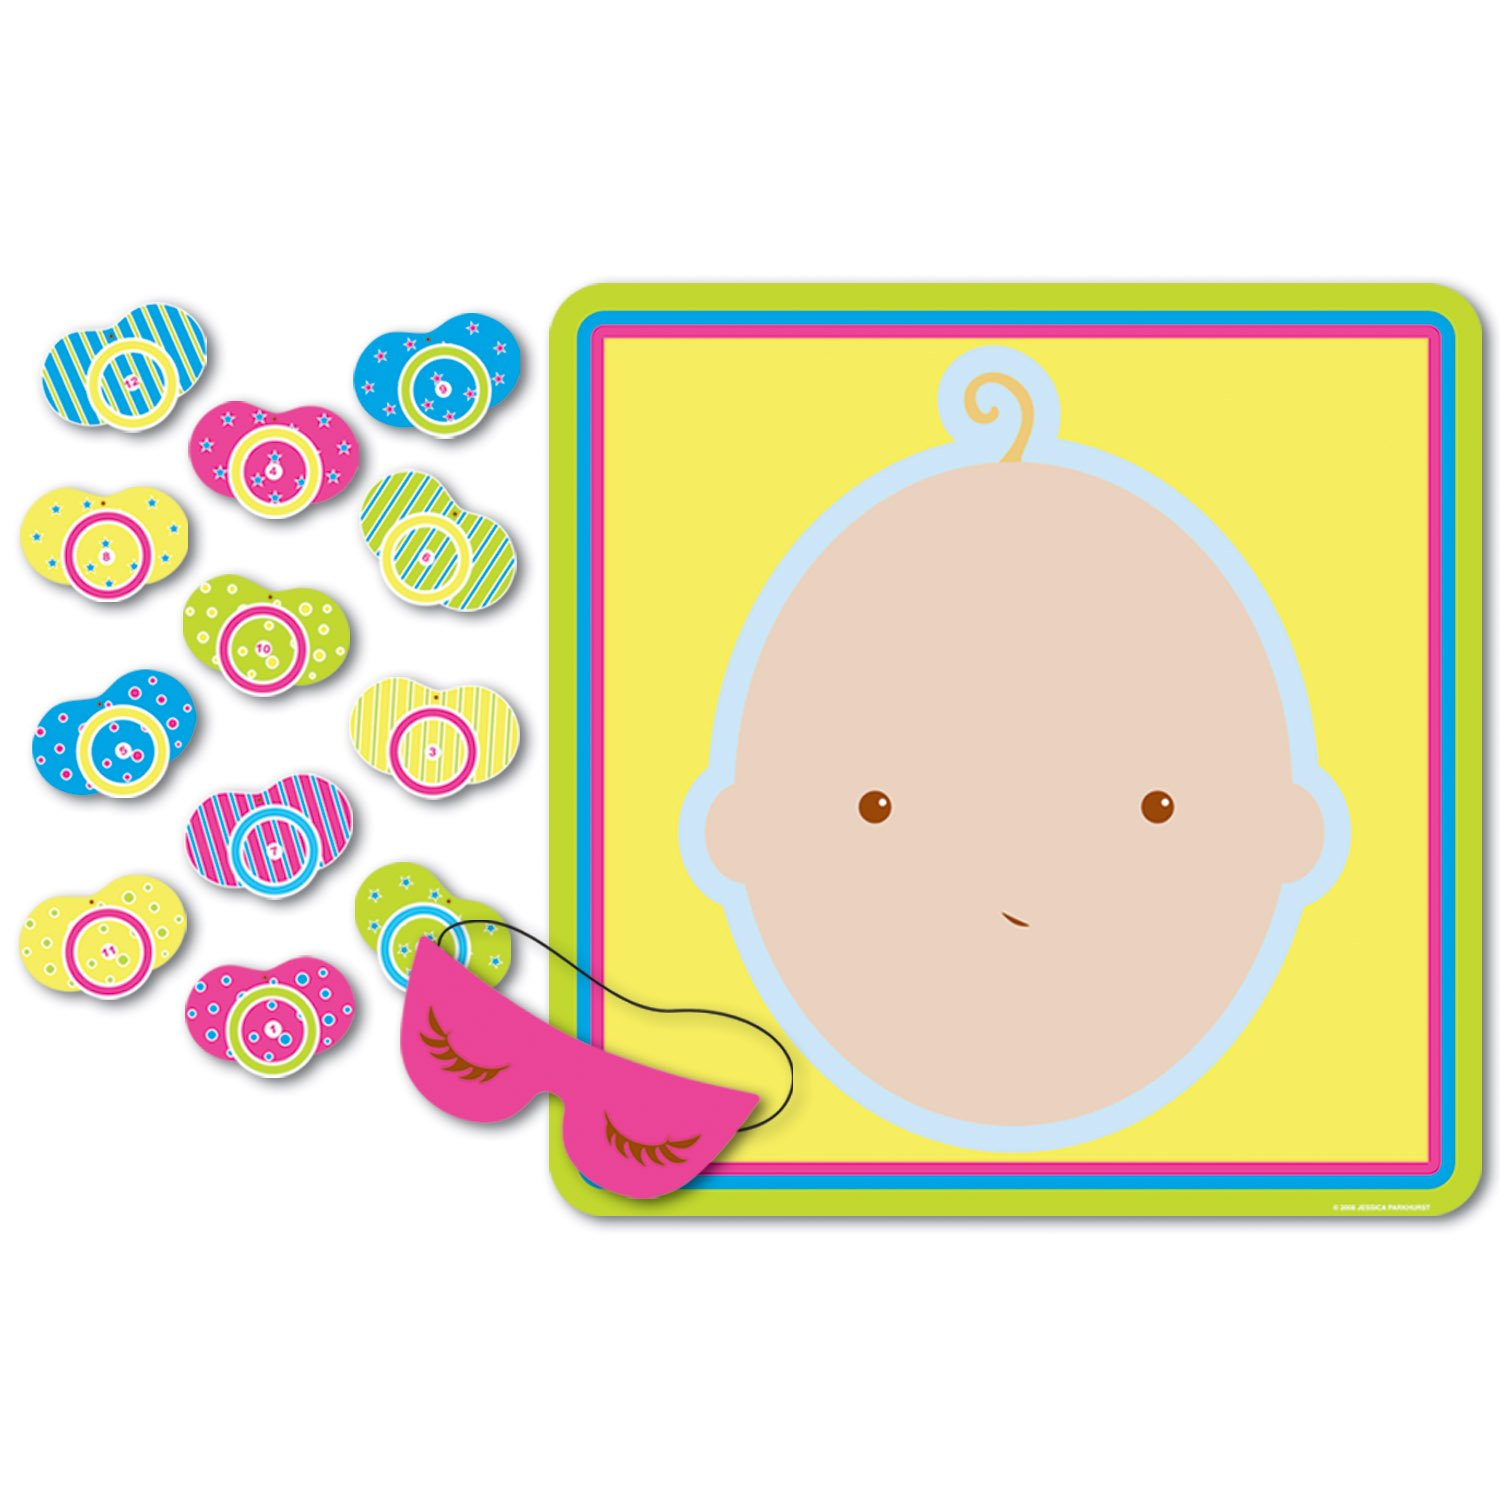 Beistle 66675 Pin The Pacifier Baby Shower Game, 17' x 18.5' 17 x 18.5 The Beistle Company